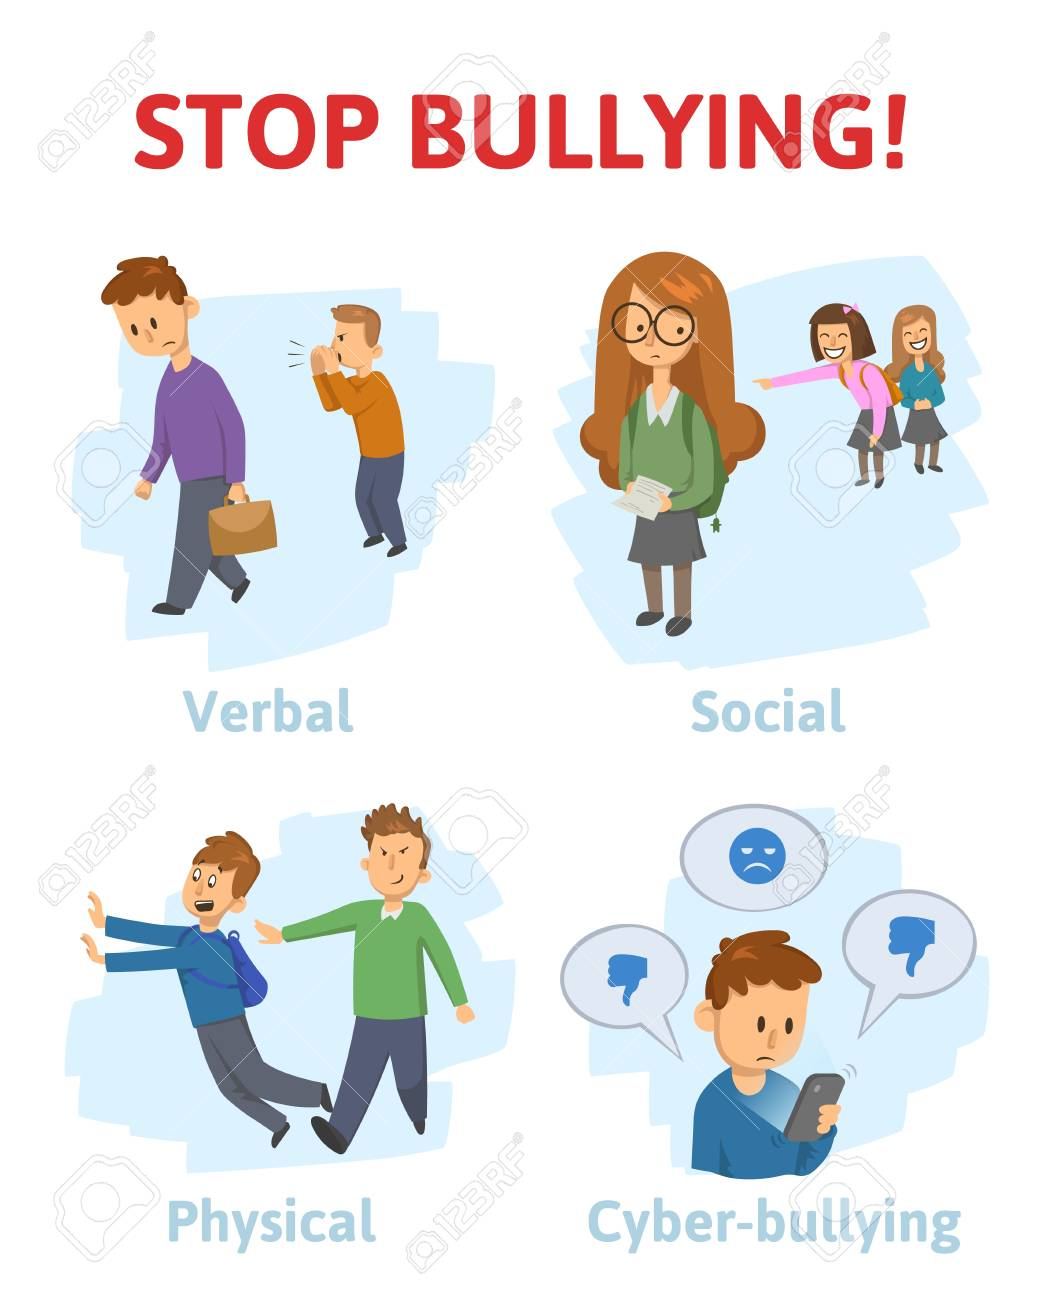 Stop bullying in the school. 4 types of bullying: verbal, social, physical, cyberbullying. Cartoon vector illustration, isolated on white background. - 98198794